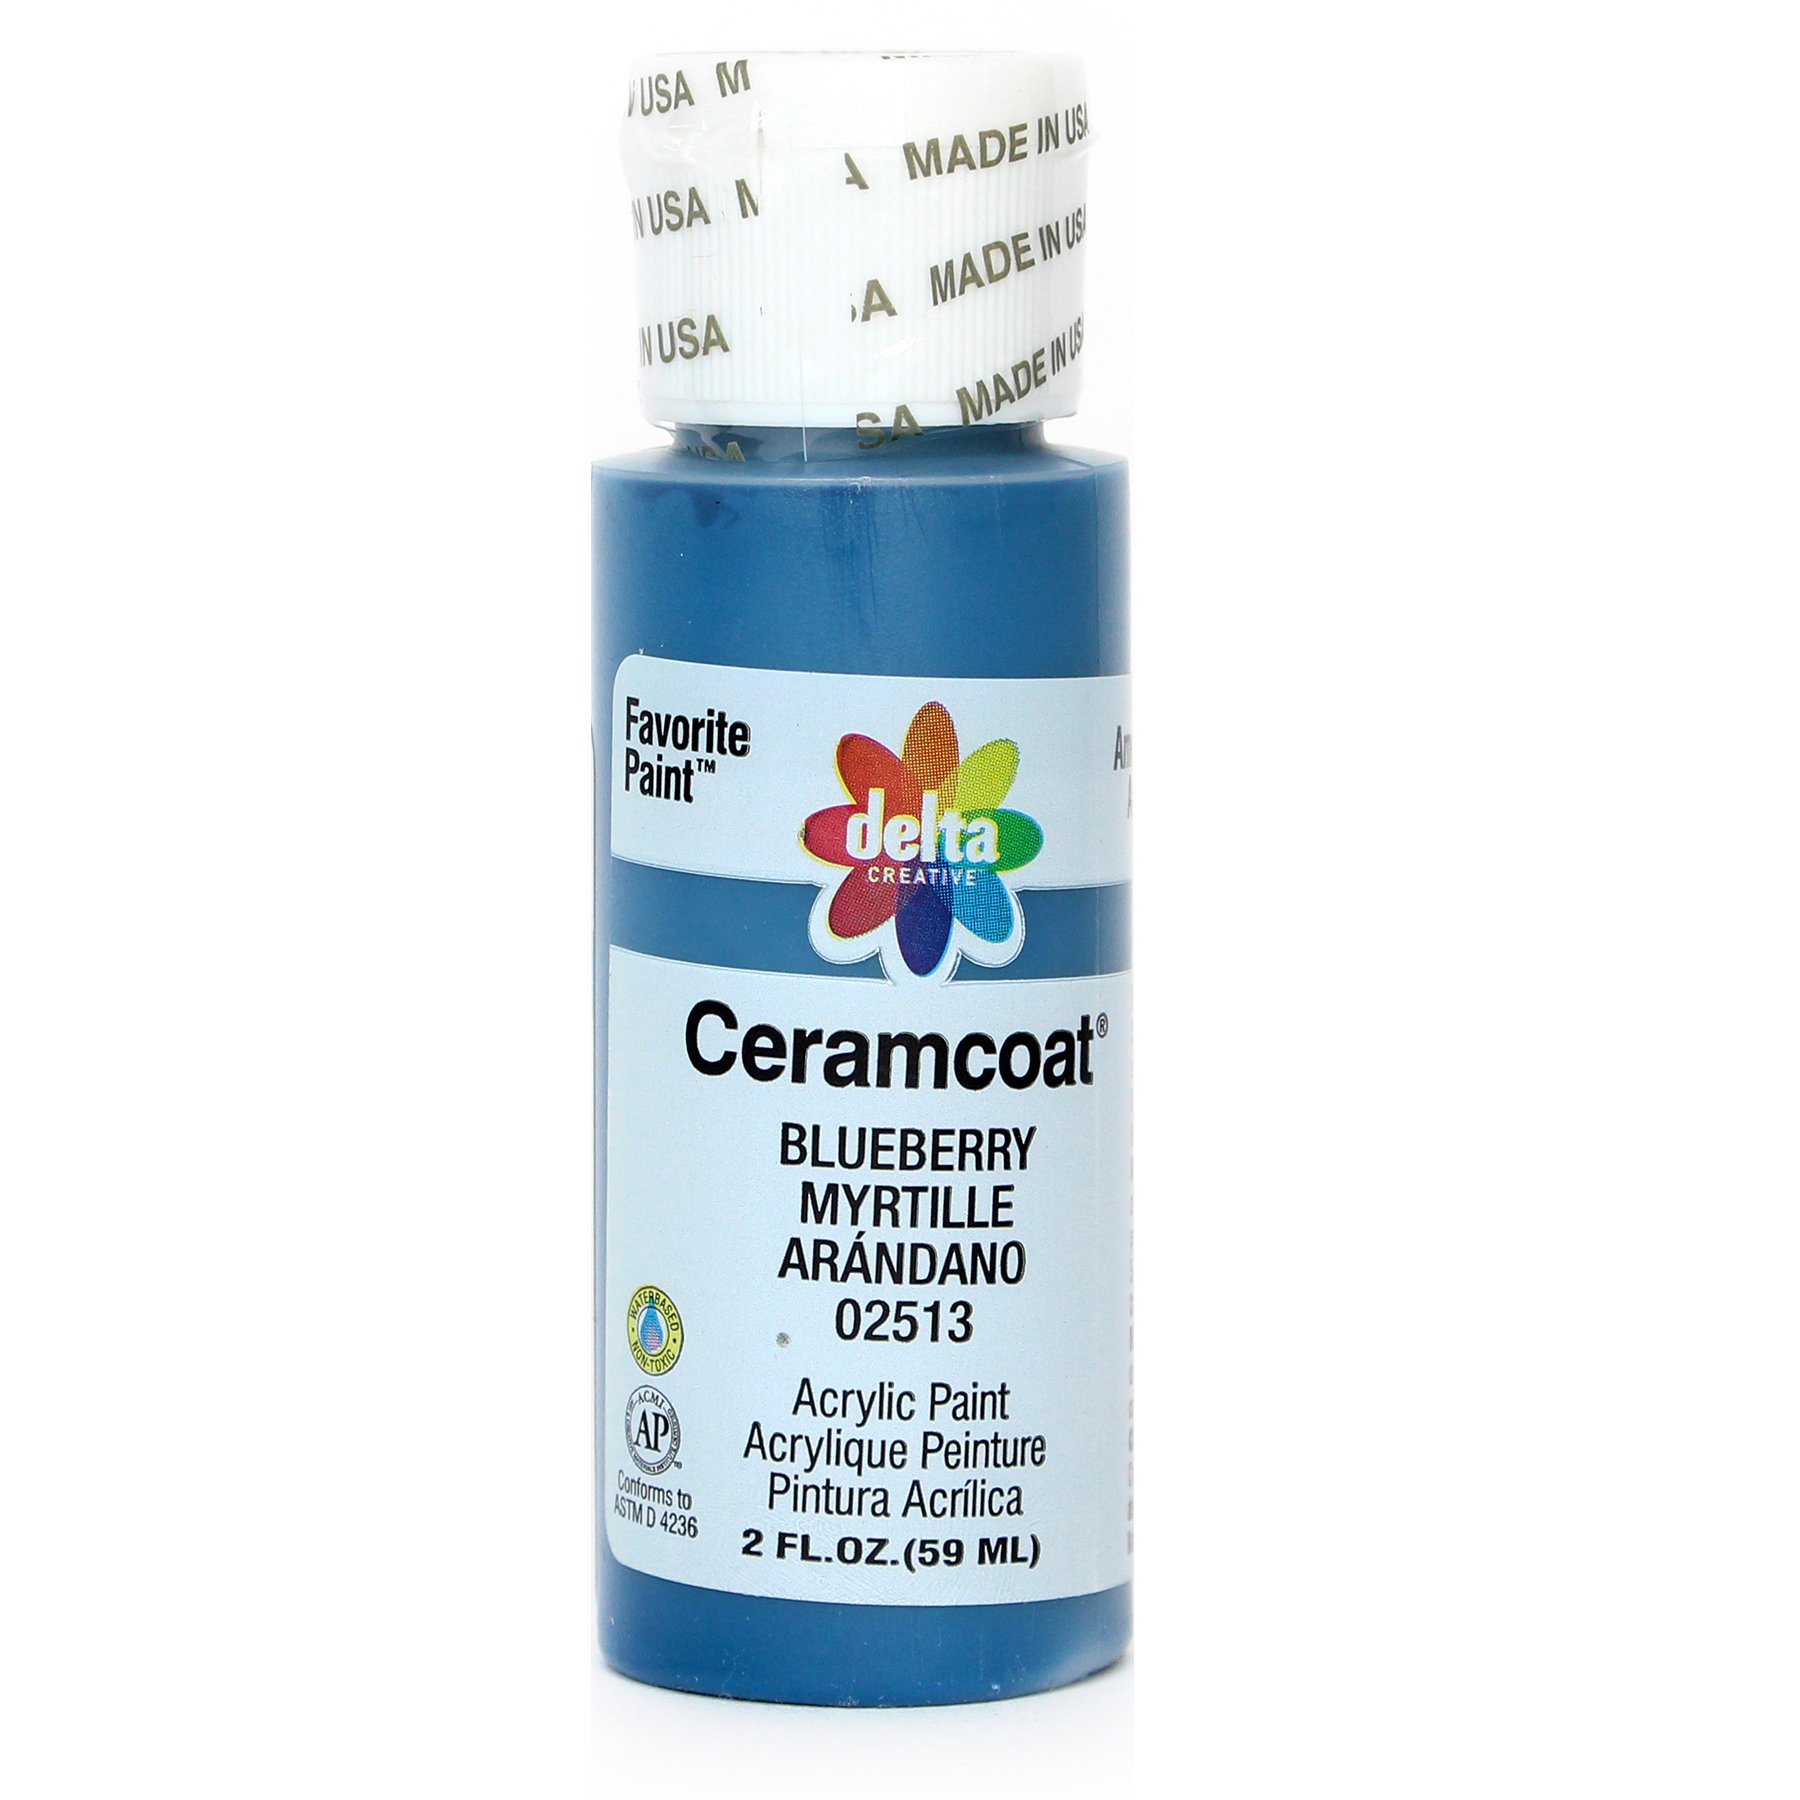 Delta Creative Ceramcoat Acrylic Paint in Assorted Colors (2 oz), 2513, Blueberry